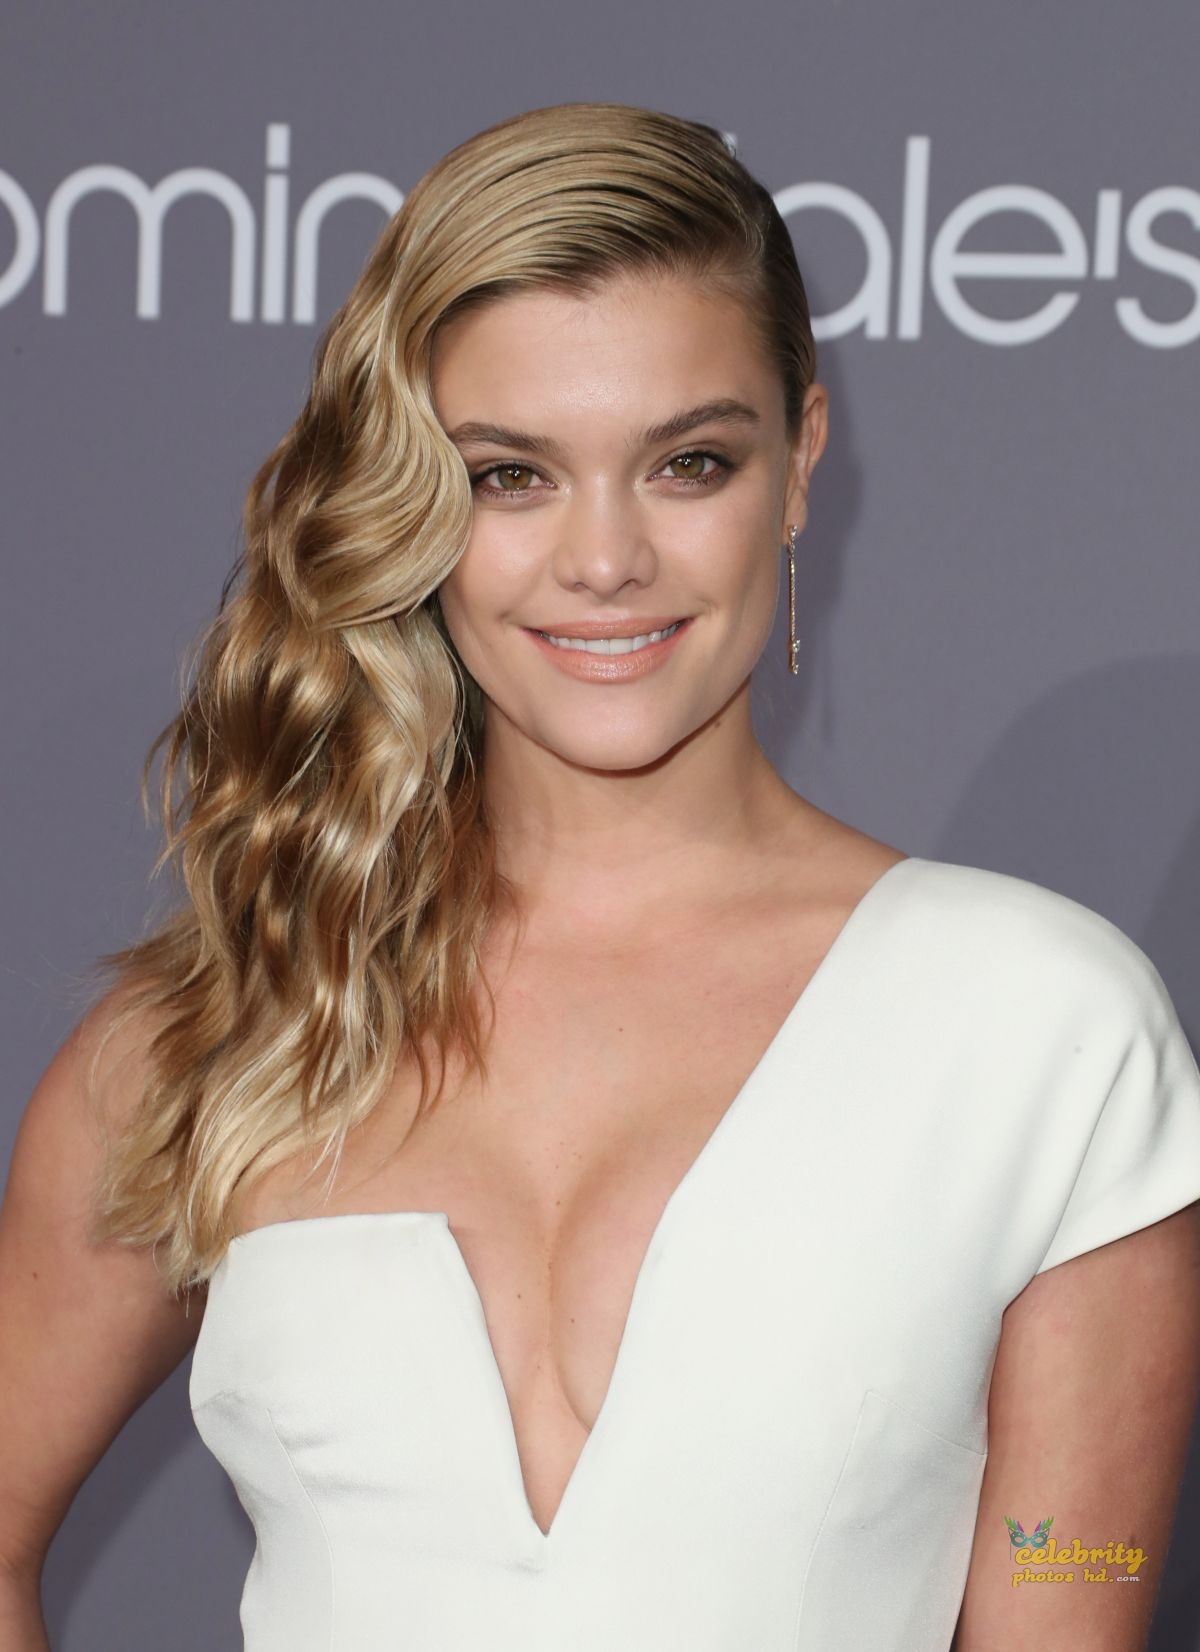 NINA AGDAL at Amfar Gala 2018 in New York (1)